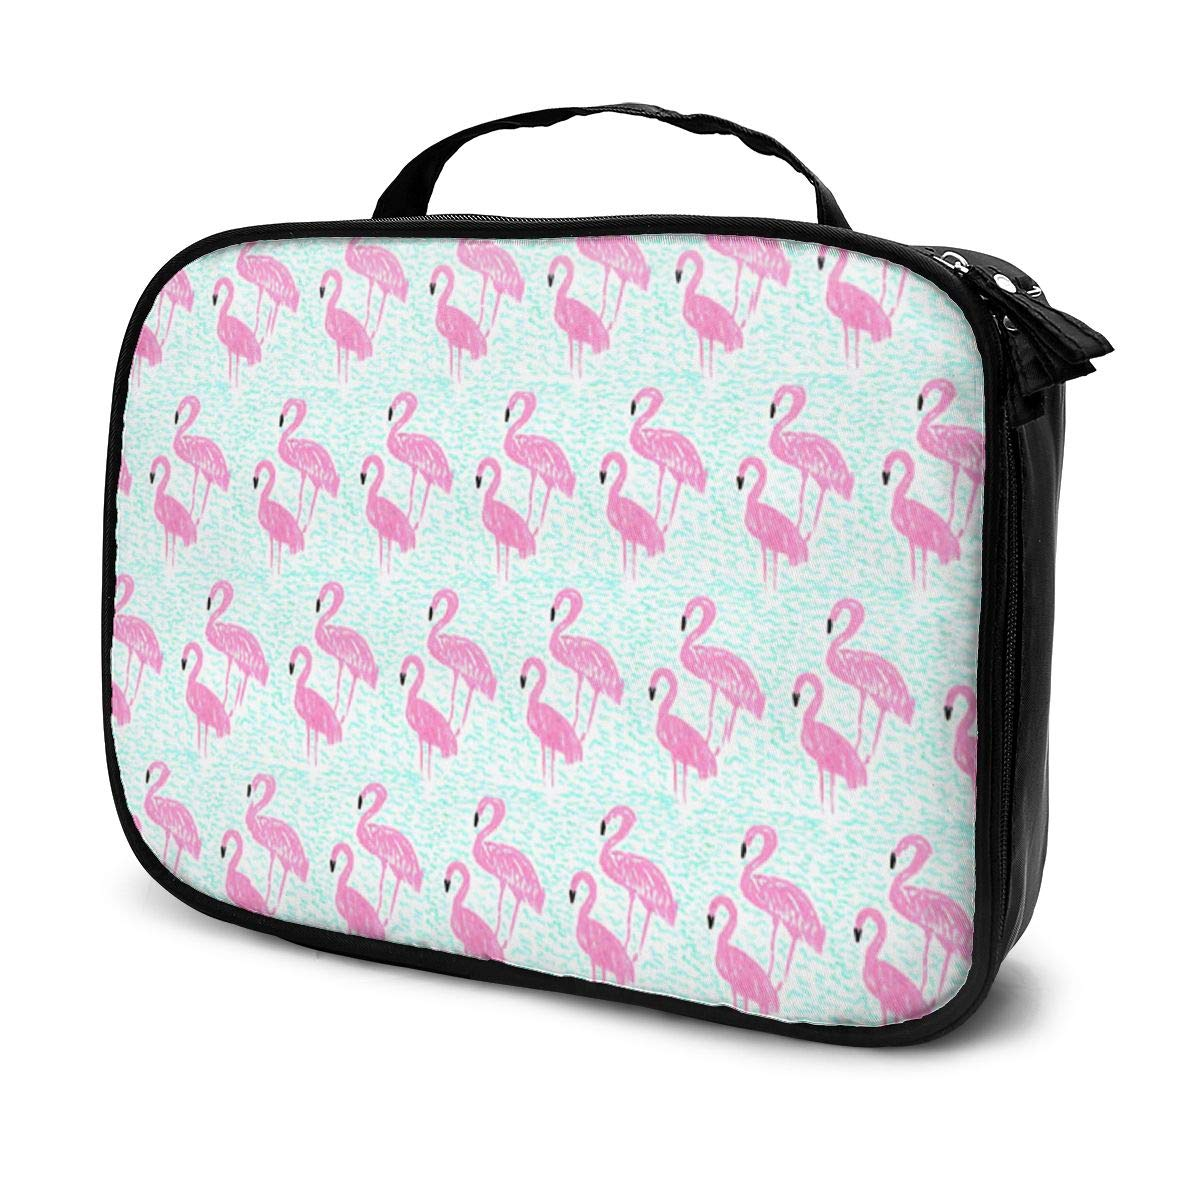 YongColer Women Pink Seamless Flamingos Make Up Bag Organizer Multifunction Cosmetic Train Case Lazy Zipper Tote Bag Large Capacity for Makeup Brushes Digital Accessories Travel